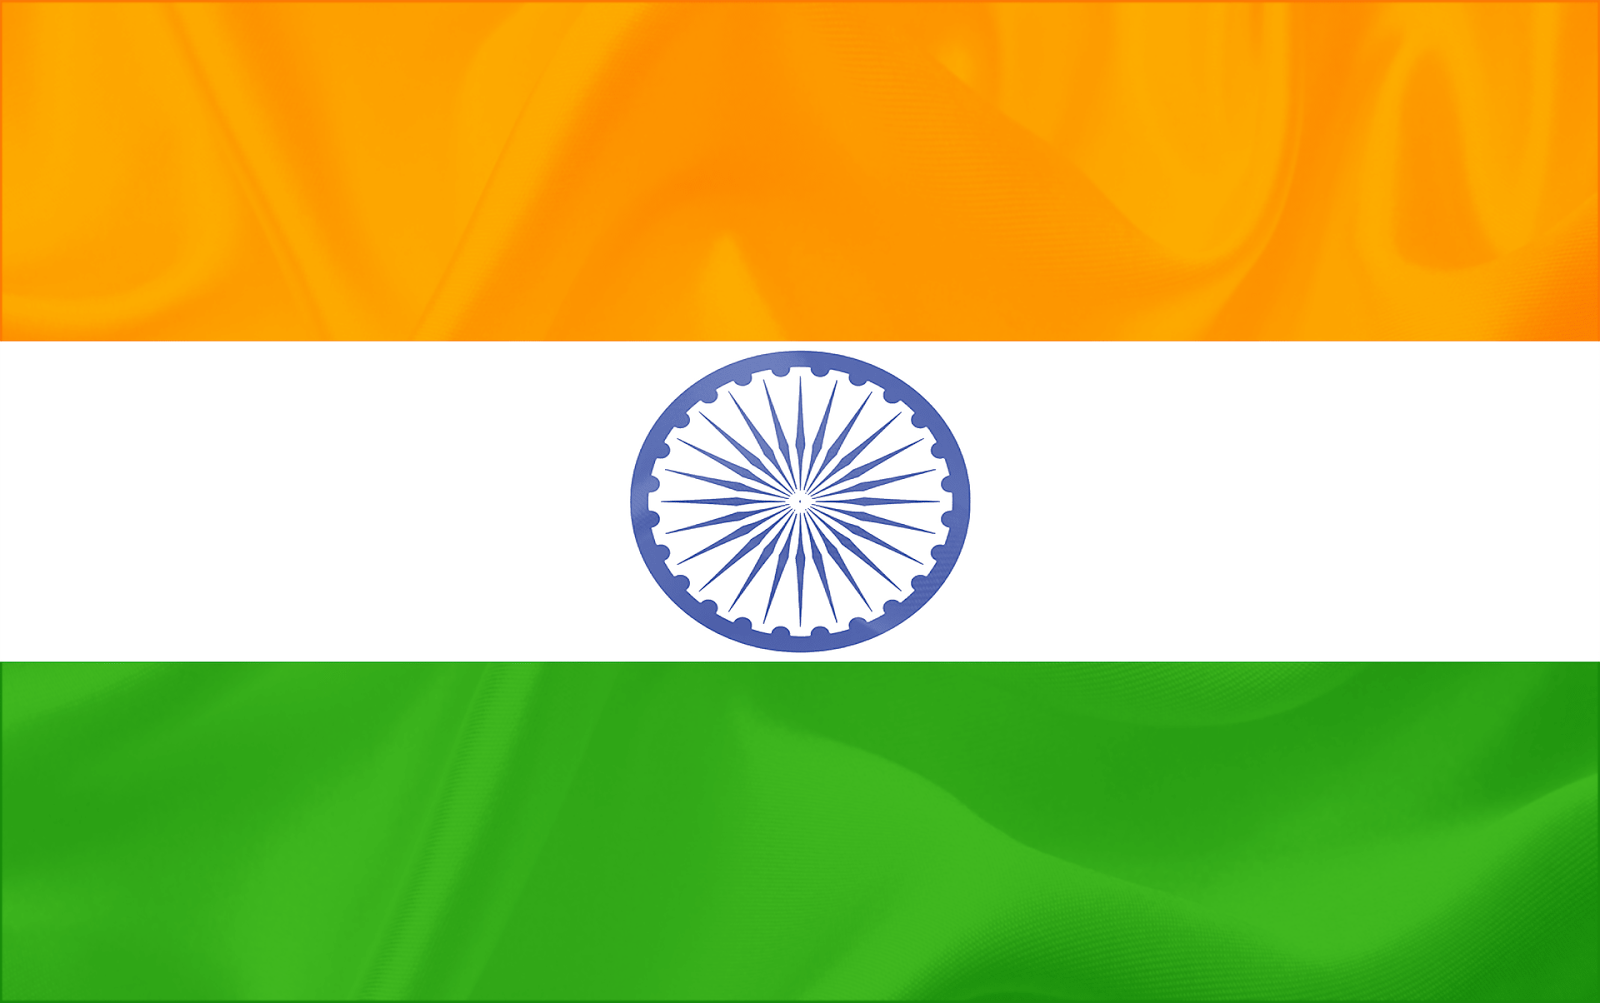 Indian Flag Images Wallpapers Download Indian%2BFlag%2BWallpaper